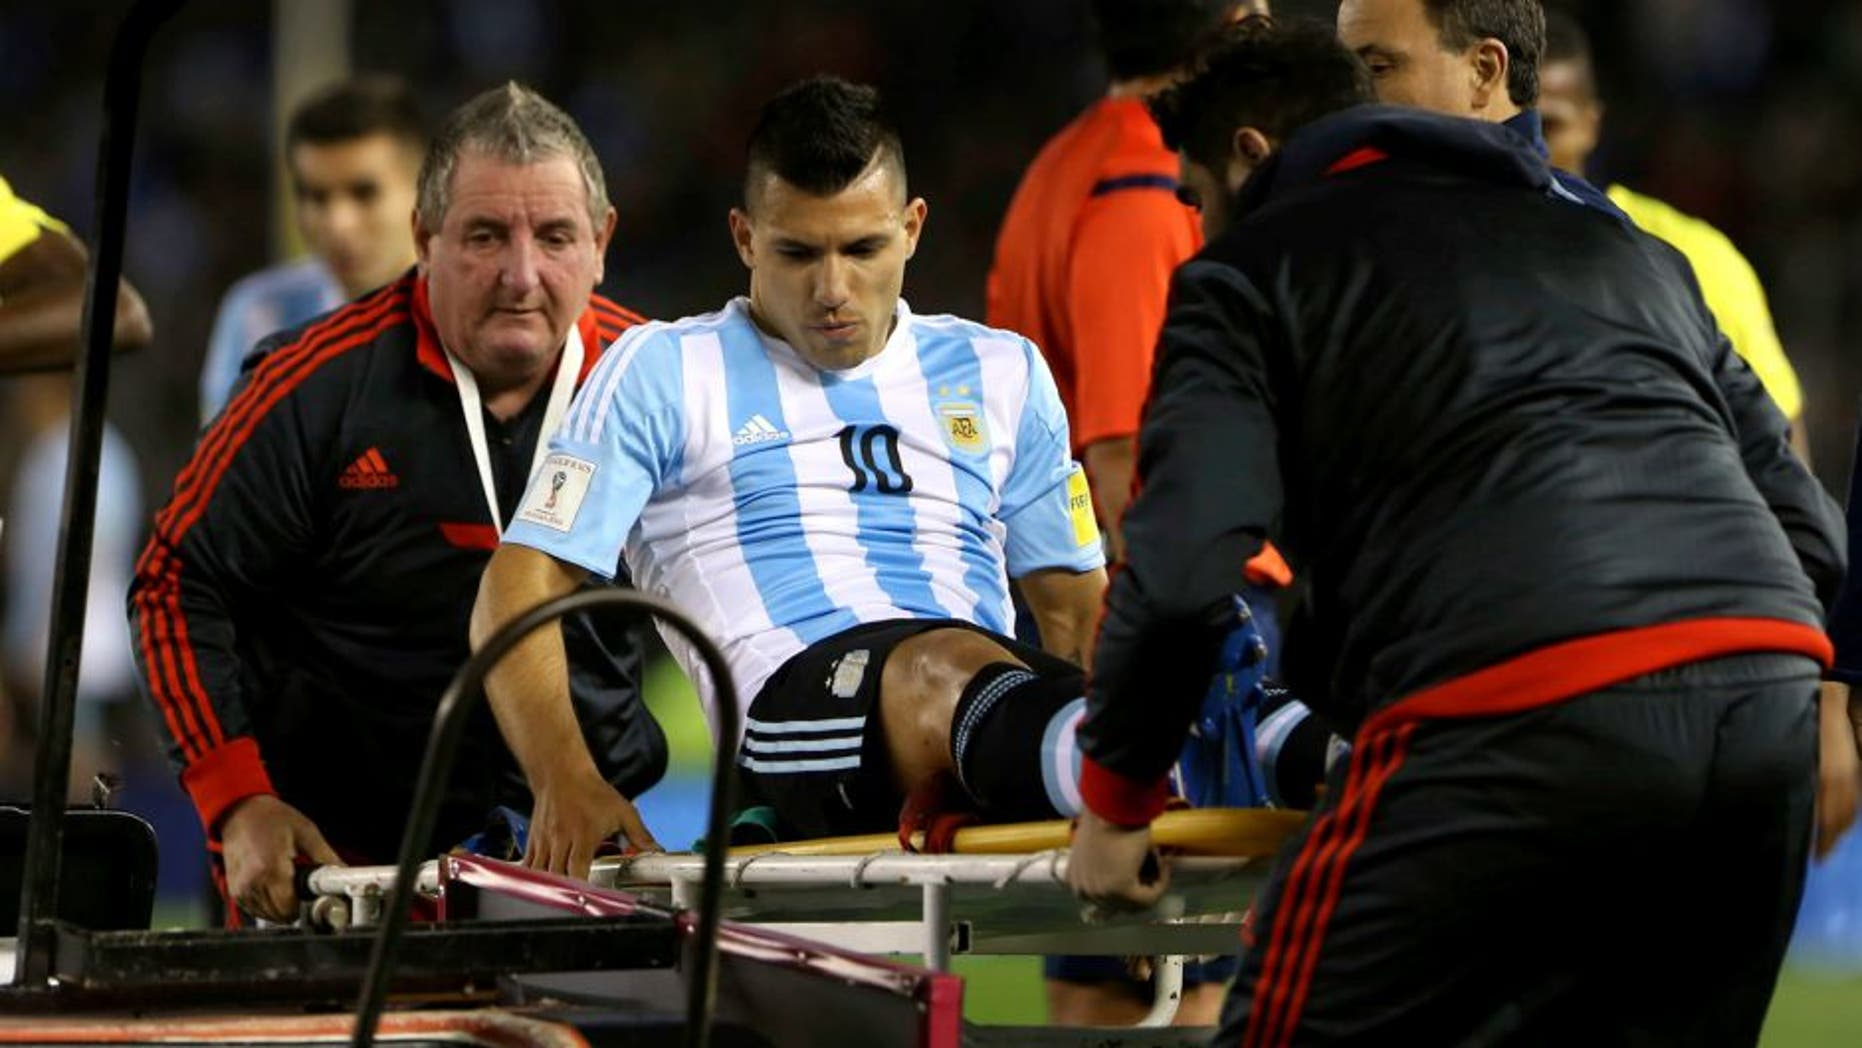 BUENOS AIRES, ARGENTINA - OCTOBER 08: Sergio Aguero, of Argentina, is carried out of the field after being injured during a match between Argentina and Ecuador as part of FIFA 2018 World Cup Qualifier at Monumental Antonio Vespucio Liberti Stadium on October 08, 2015 in Buenos Aires, Argentina. (Photo by Daniel Jayo/LatinContent/Getty Images)